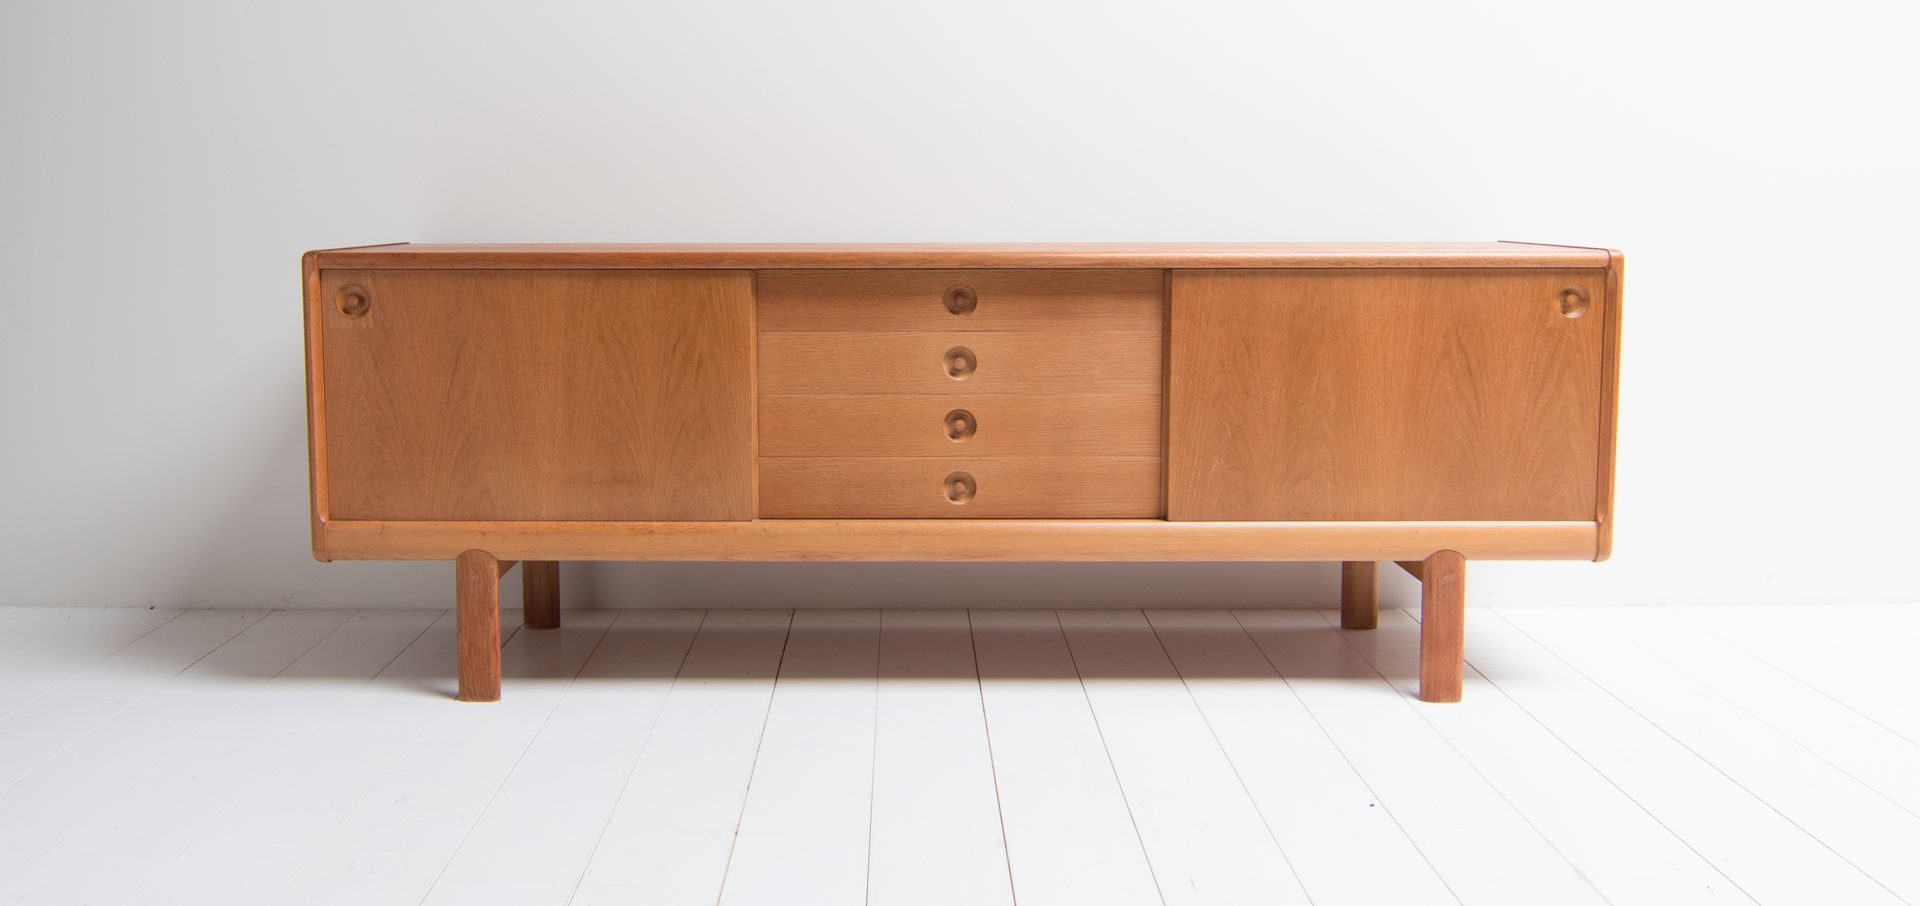 d nisches sideboard von henry w klein f r bramin 1970er bei pamono kaufen. Black Bedroom Furniture Sets. Home Design Ideas